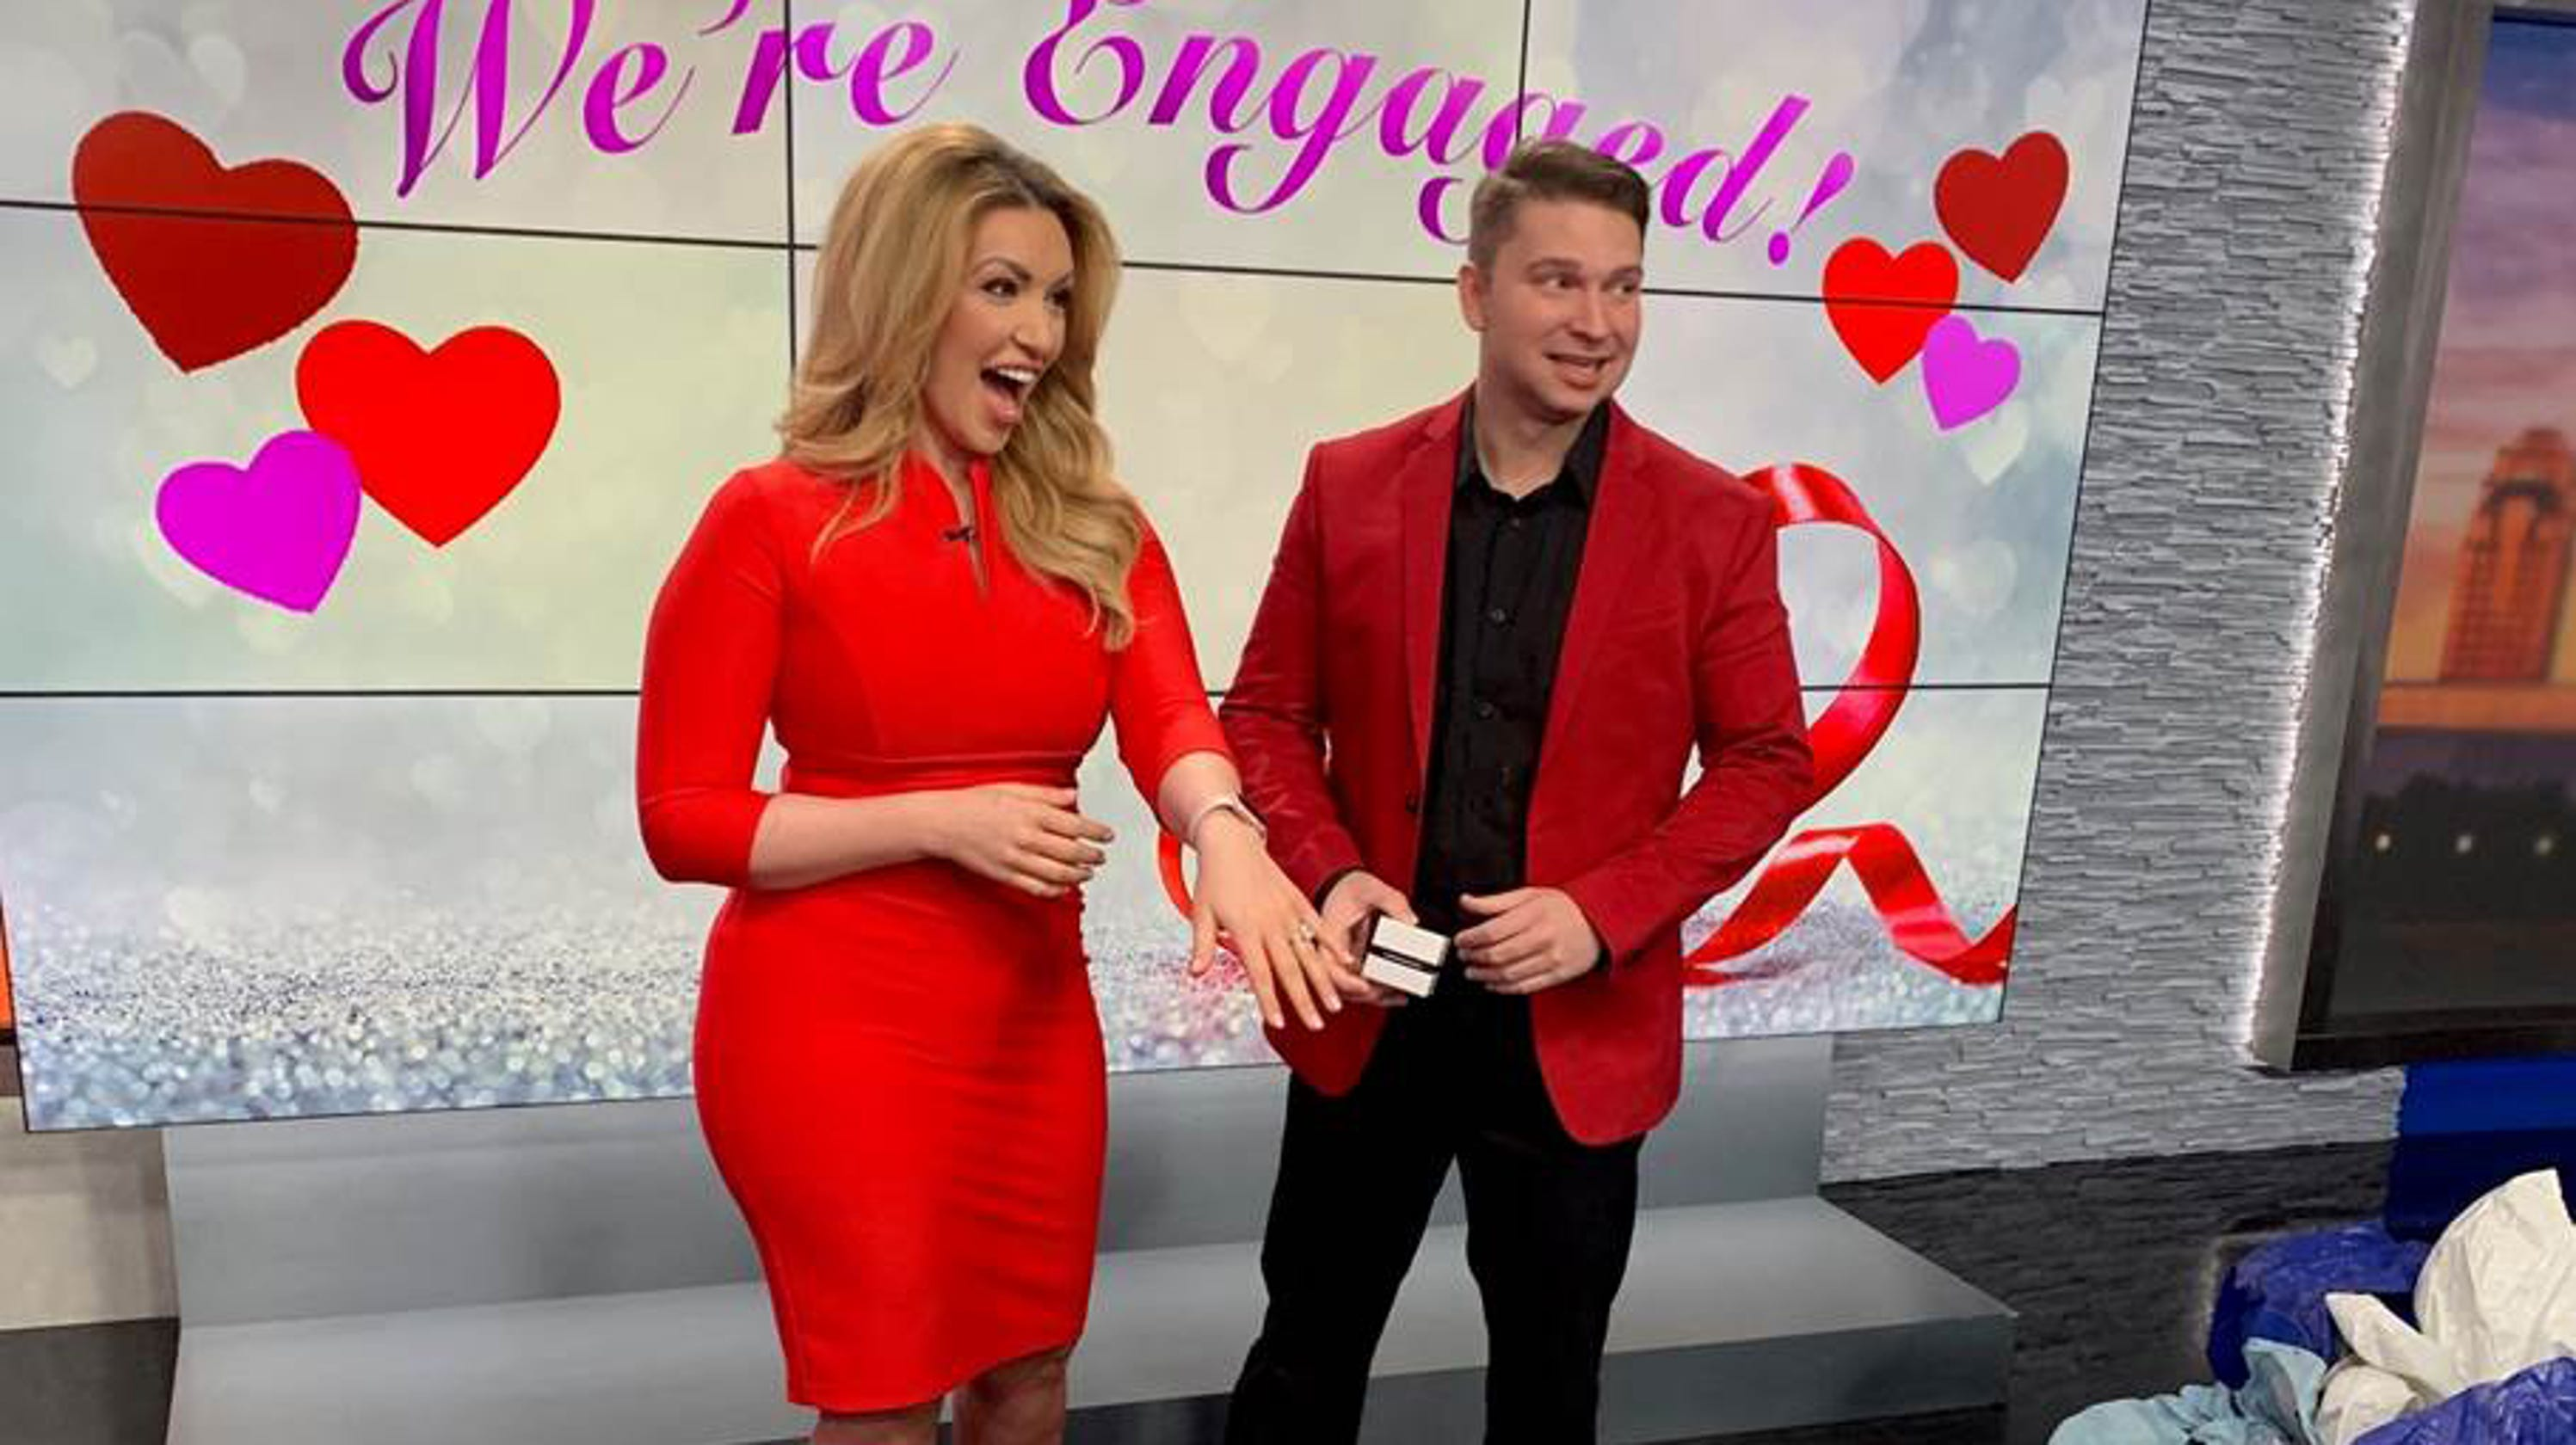 783d586121ed23 Valentine s Day marriage proposal captured on morning TV news set